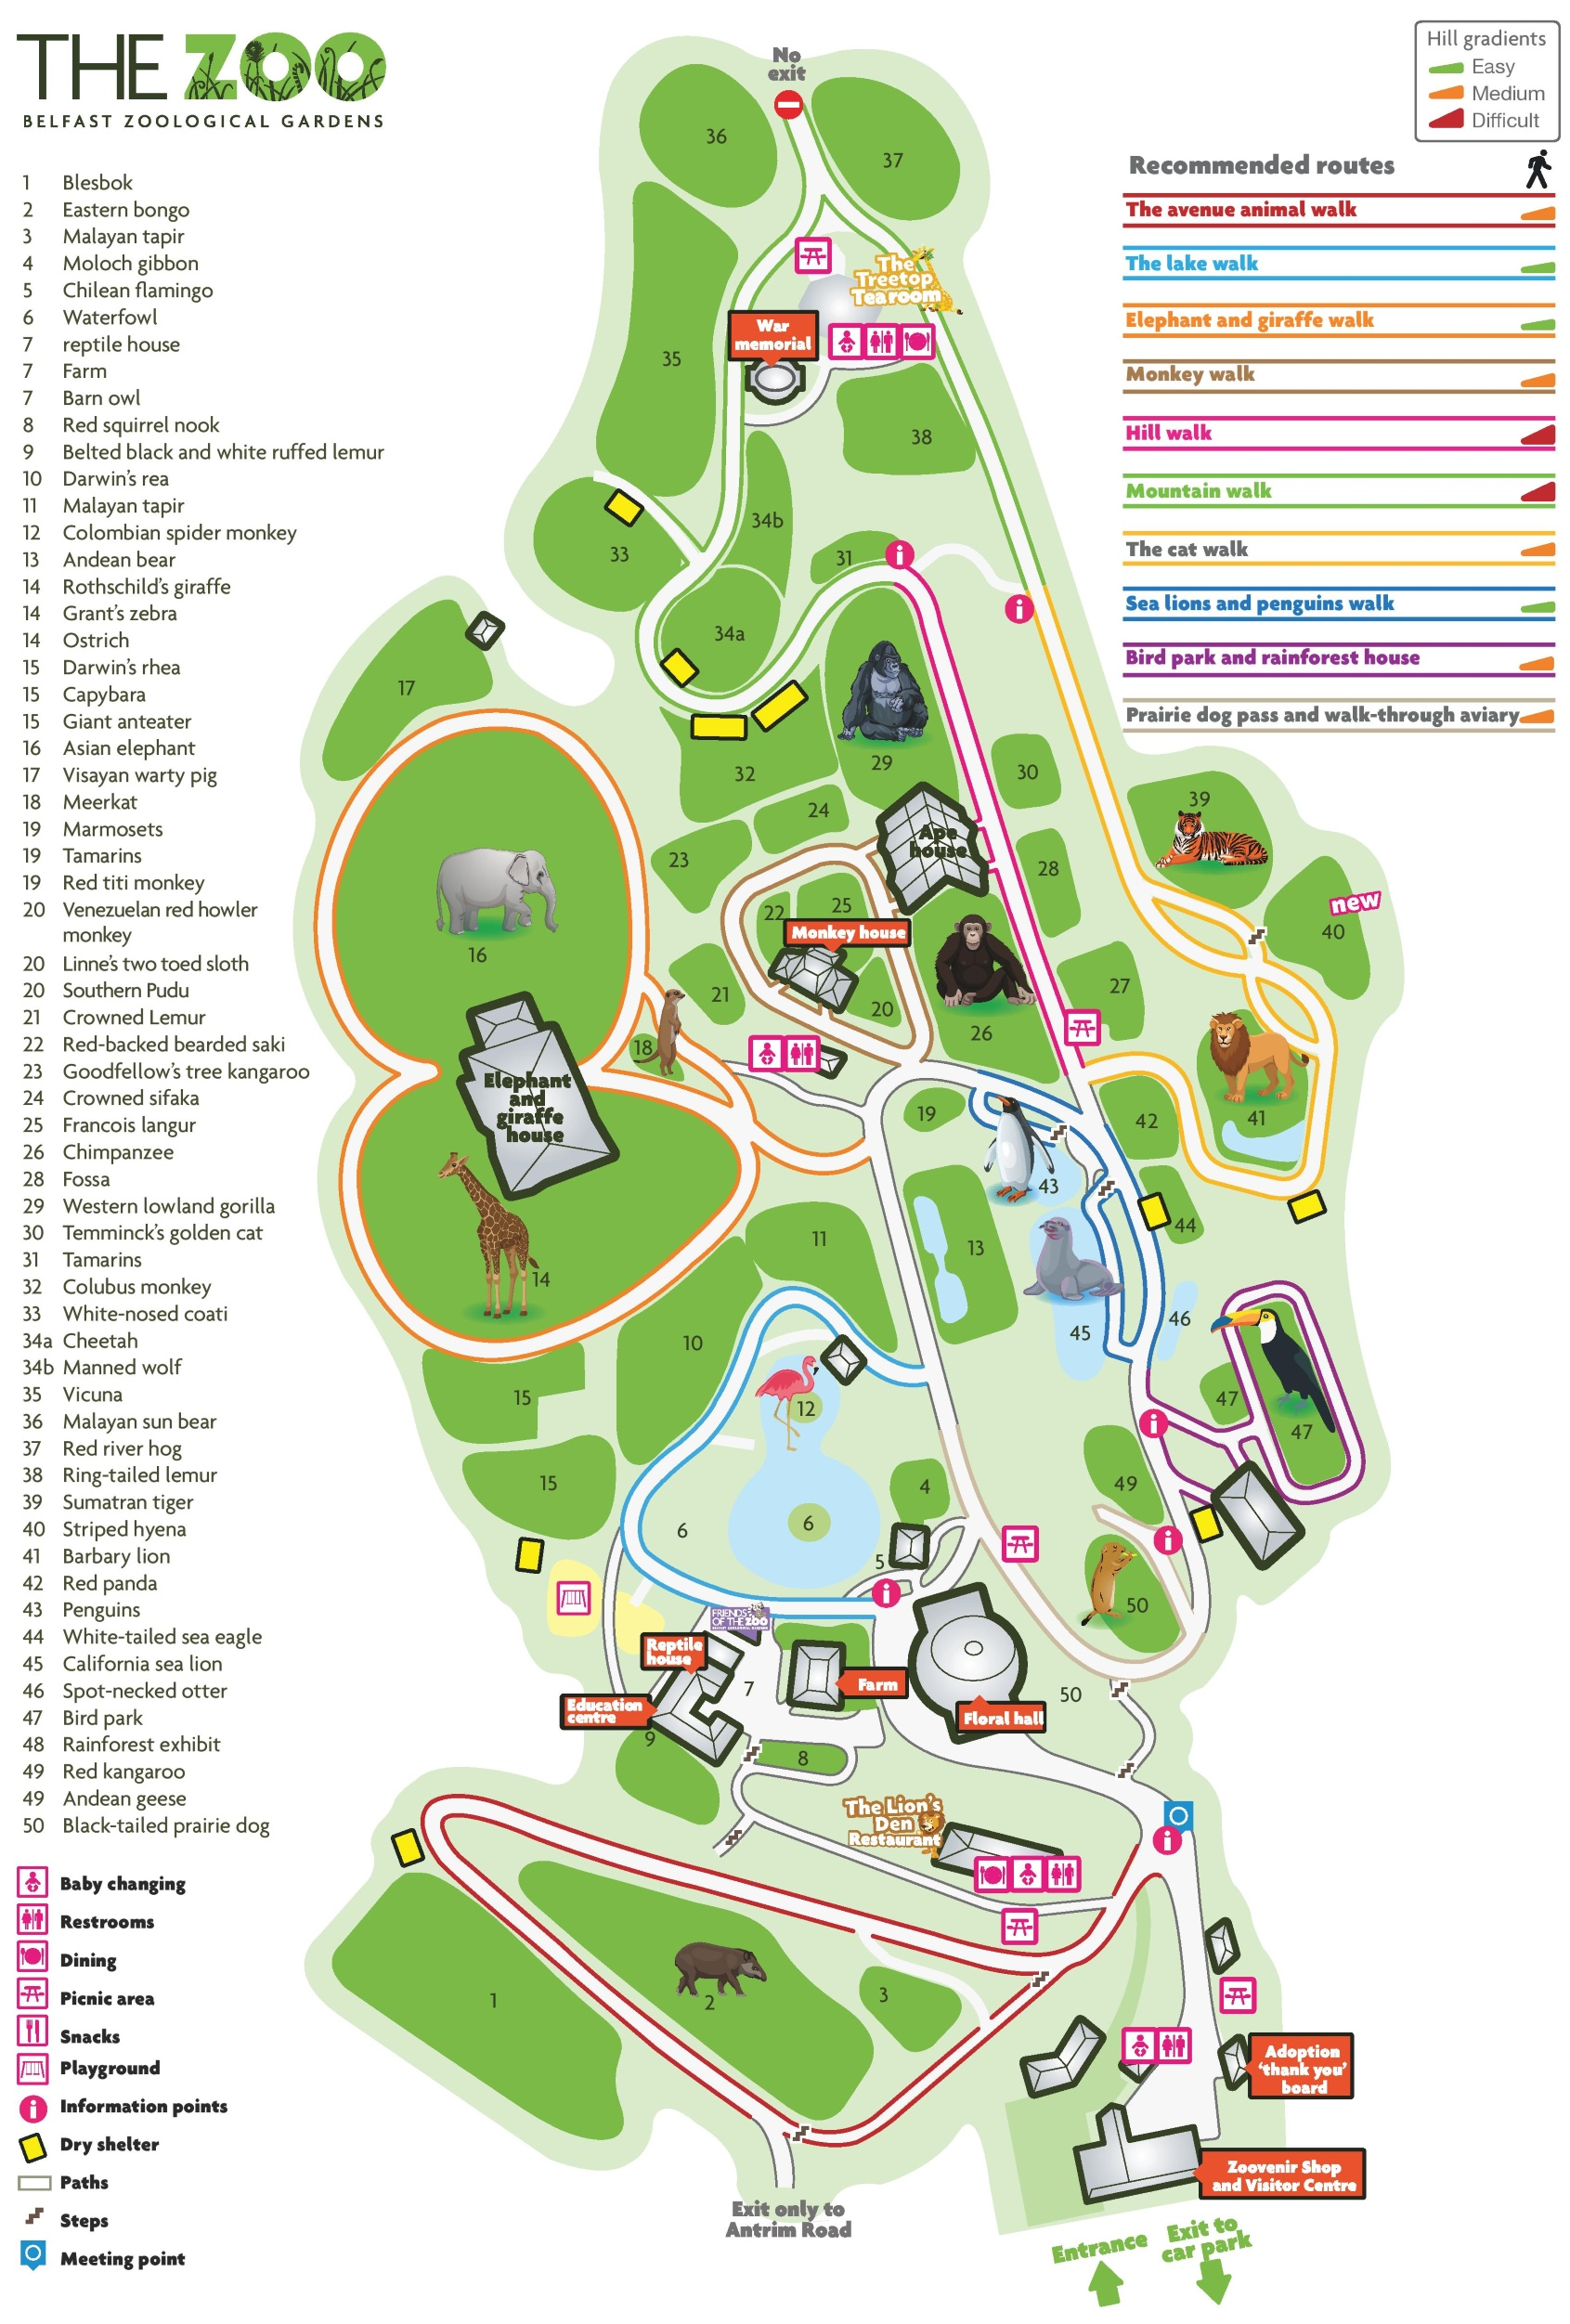 Belfast Zoo map